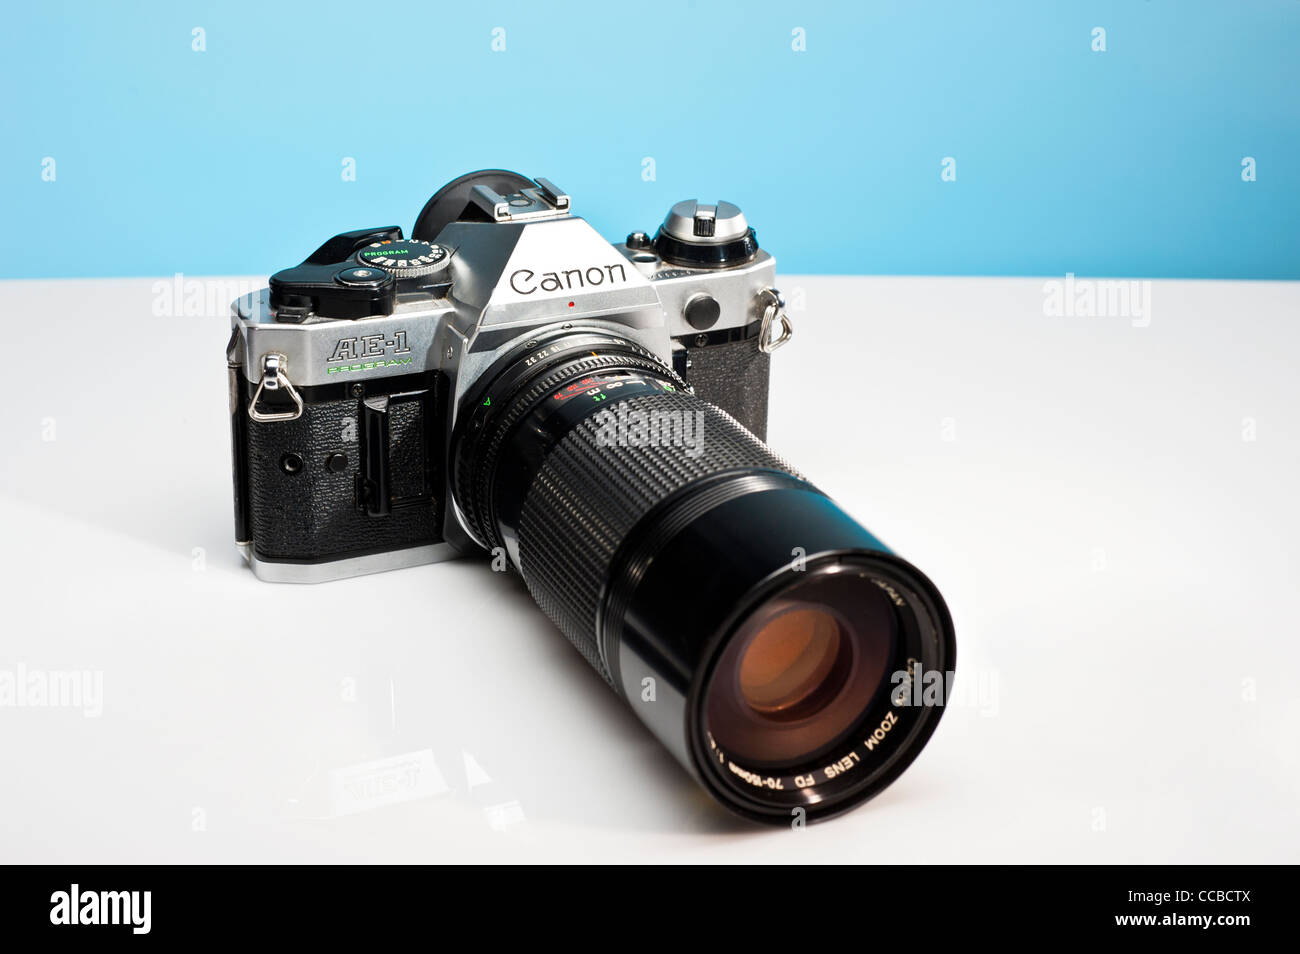 Canon AE-1 film camera with a long telephoto zoom lens attached. - Stock Image